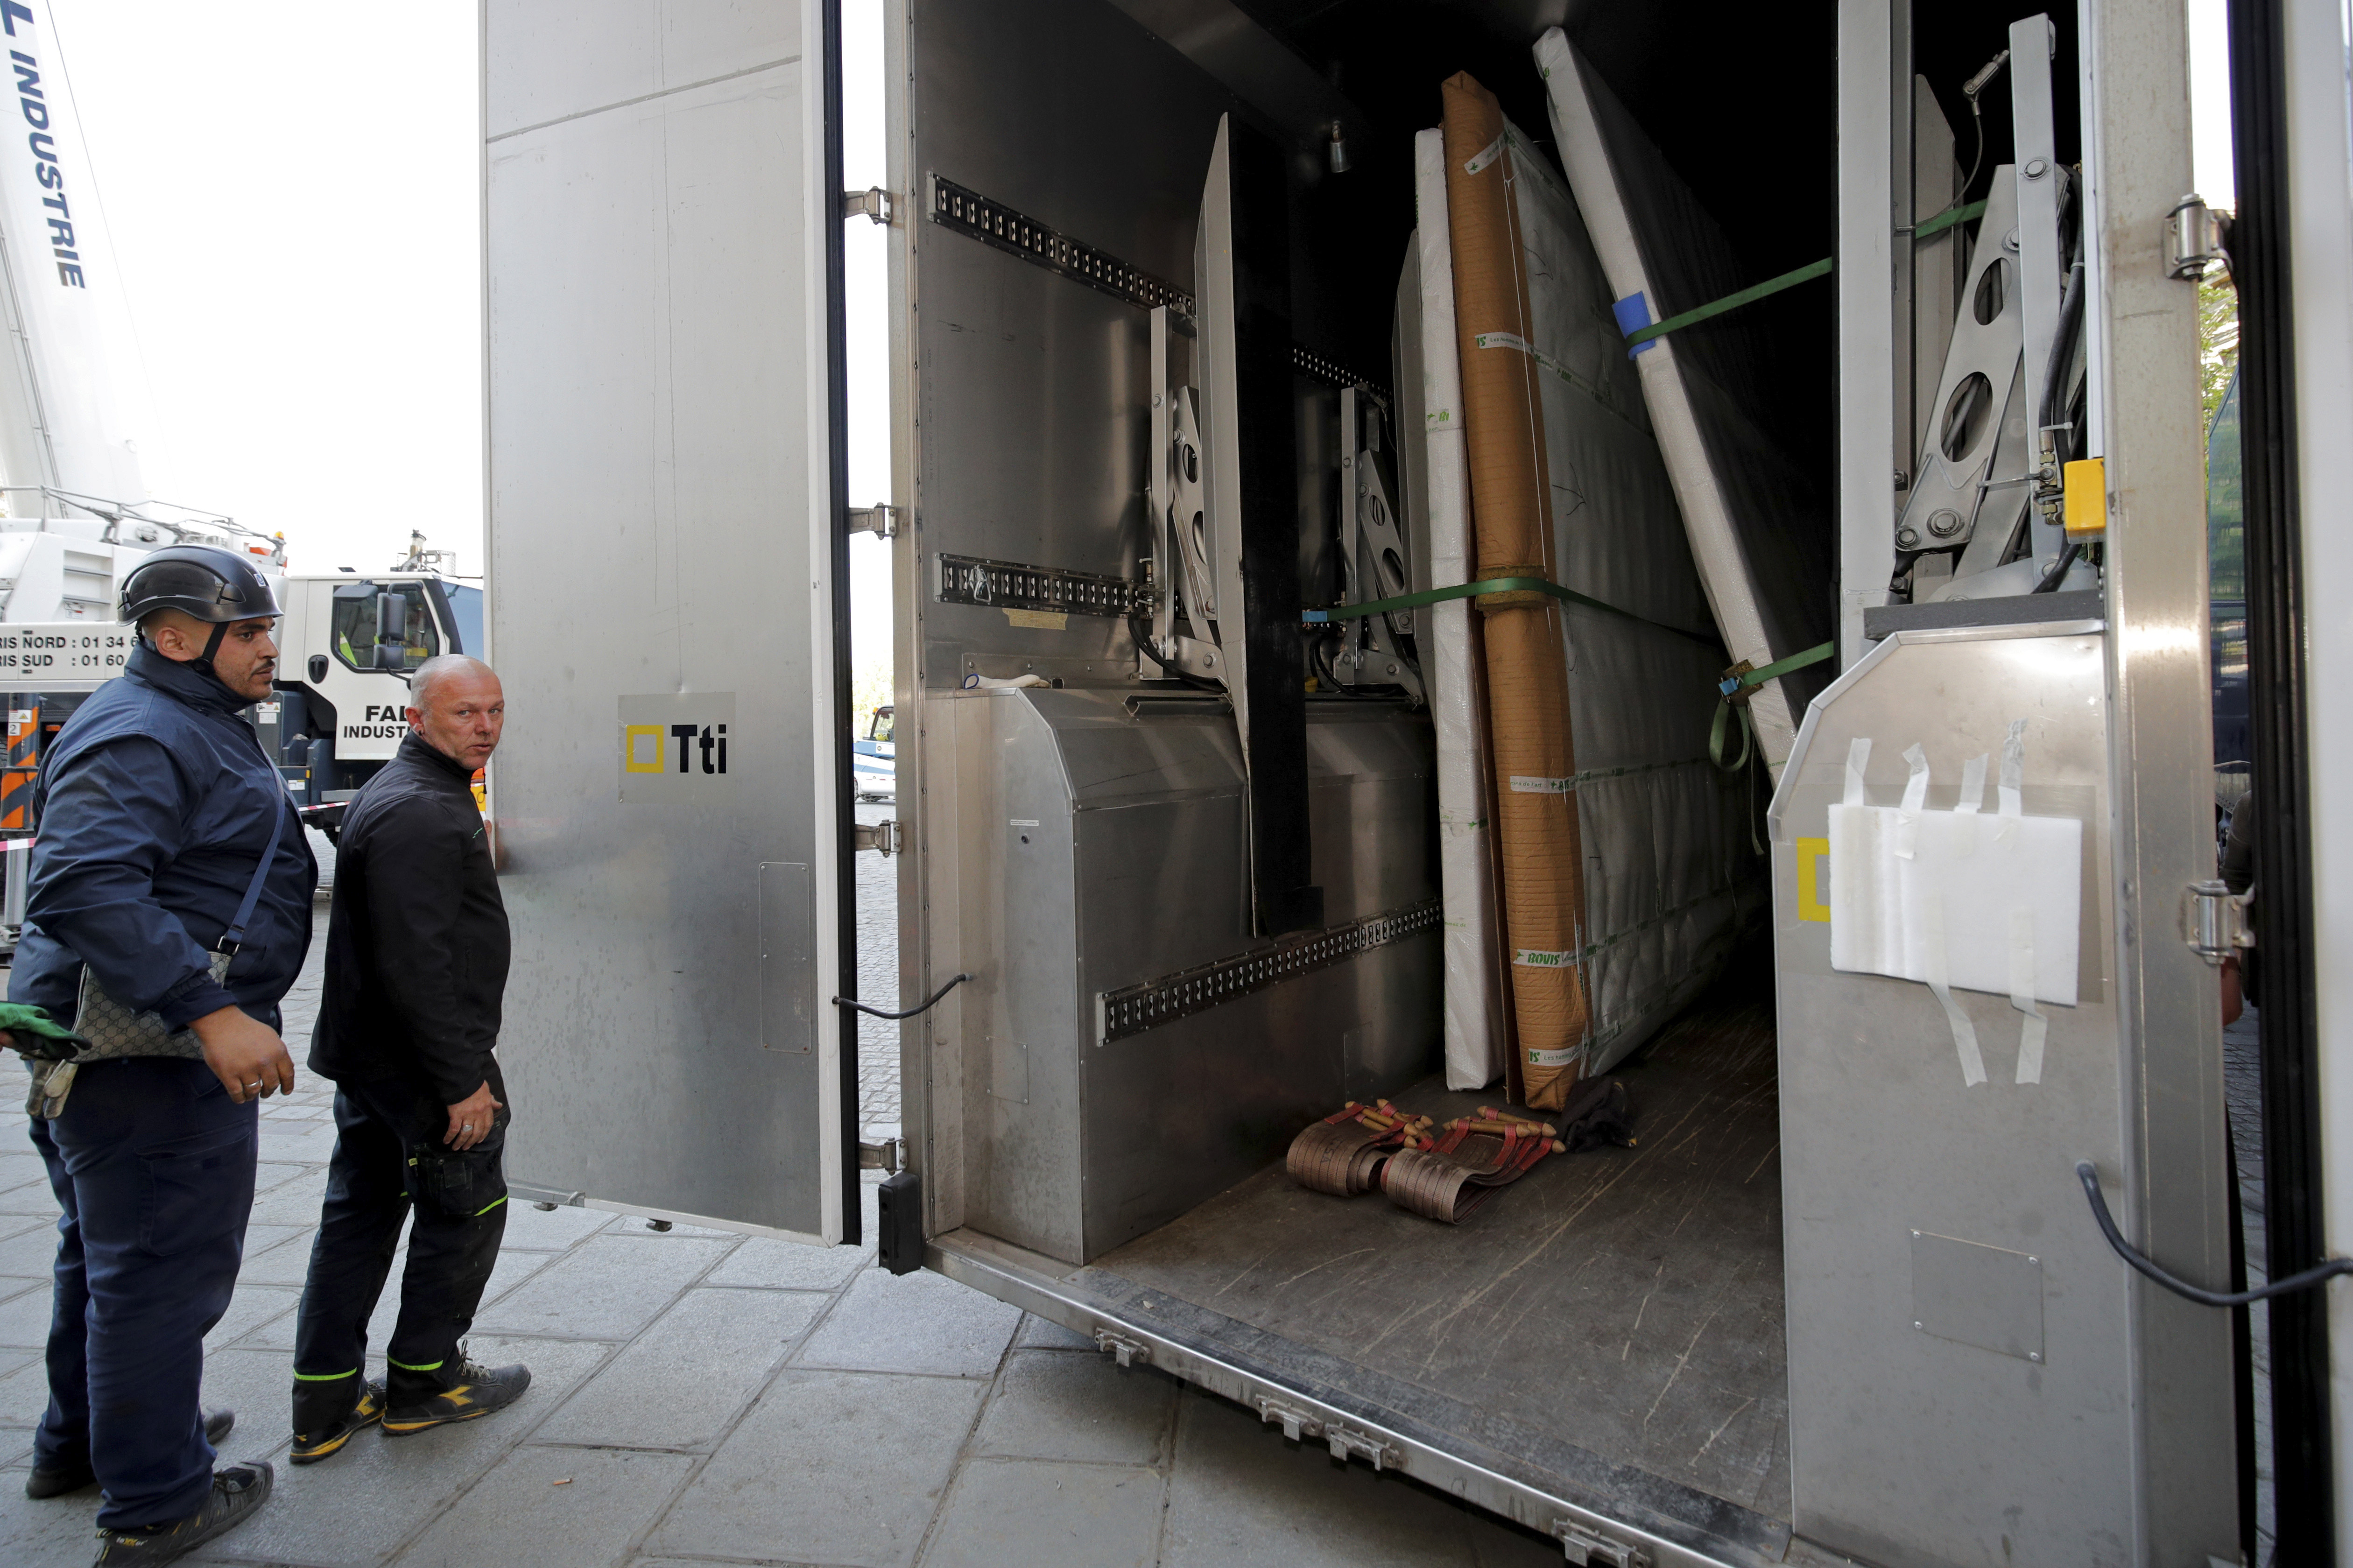 Large artworks are seen in a truck after being removed from Notre-Dame Cathedral to be secured after a massive fire devastated large parts of the gothic cathedral in Paris, Friday, April 19, 2019. Rebuilding Notre Dame, the 800-year-old Paris cathedral devastated by fire this week, will cost billions of dollars as architects, historians and artisans work to preserve the medieval landmark. (Philippe Wojazer/Pool via AP)